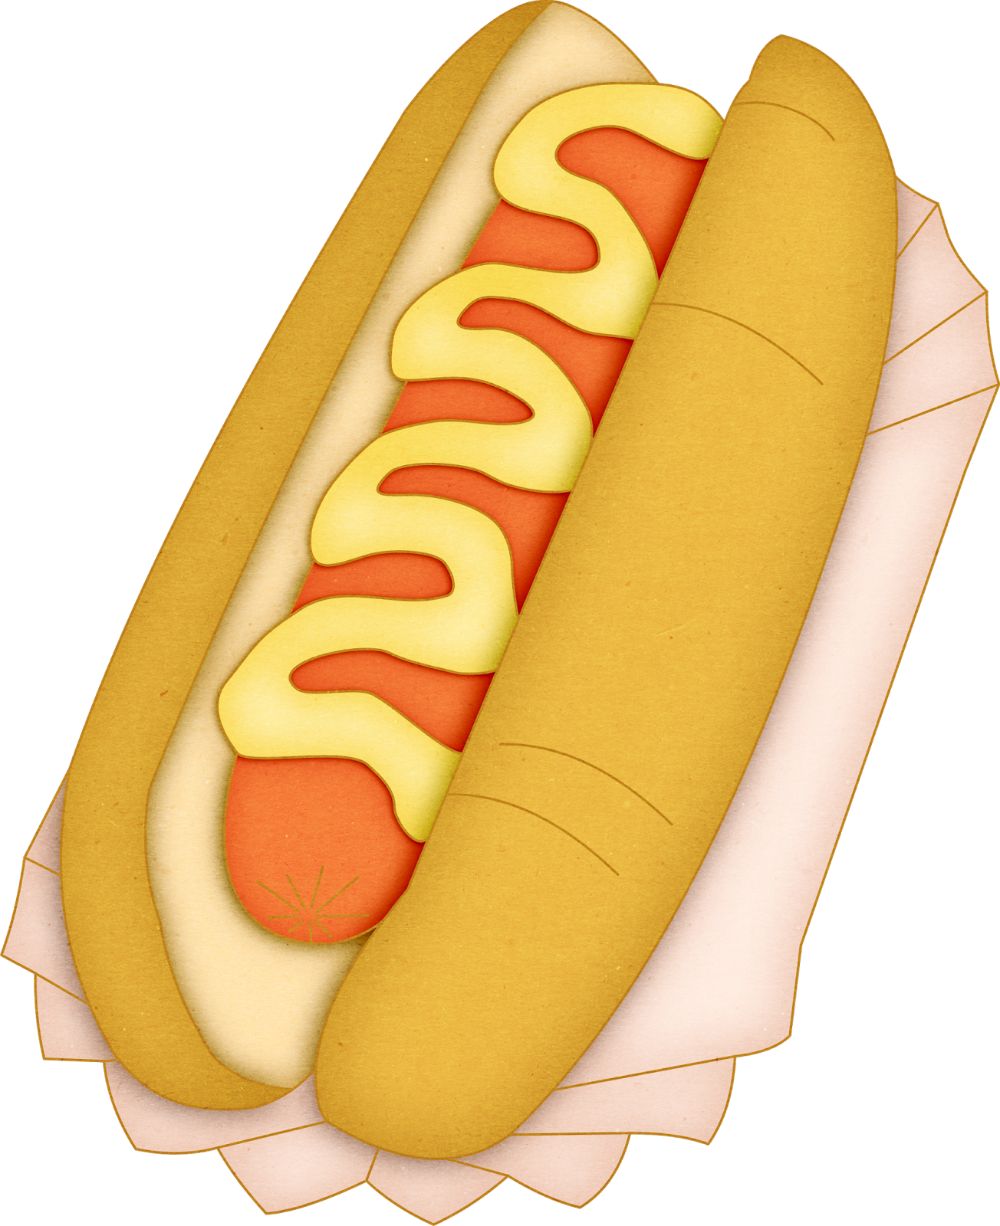 Country Party Free Printable Clipart Food Clips Cooking Art Hot Dog Drawing